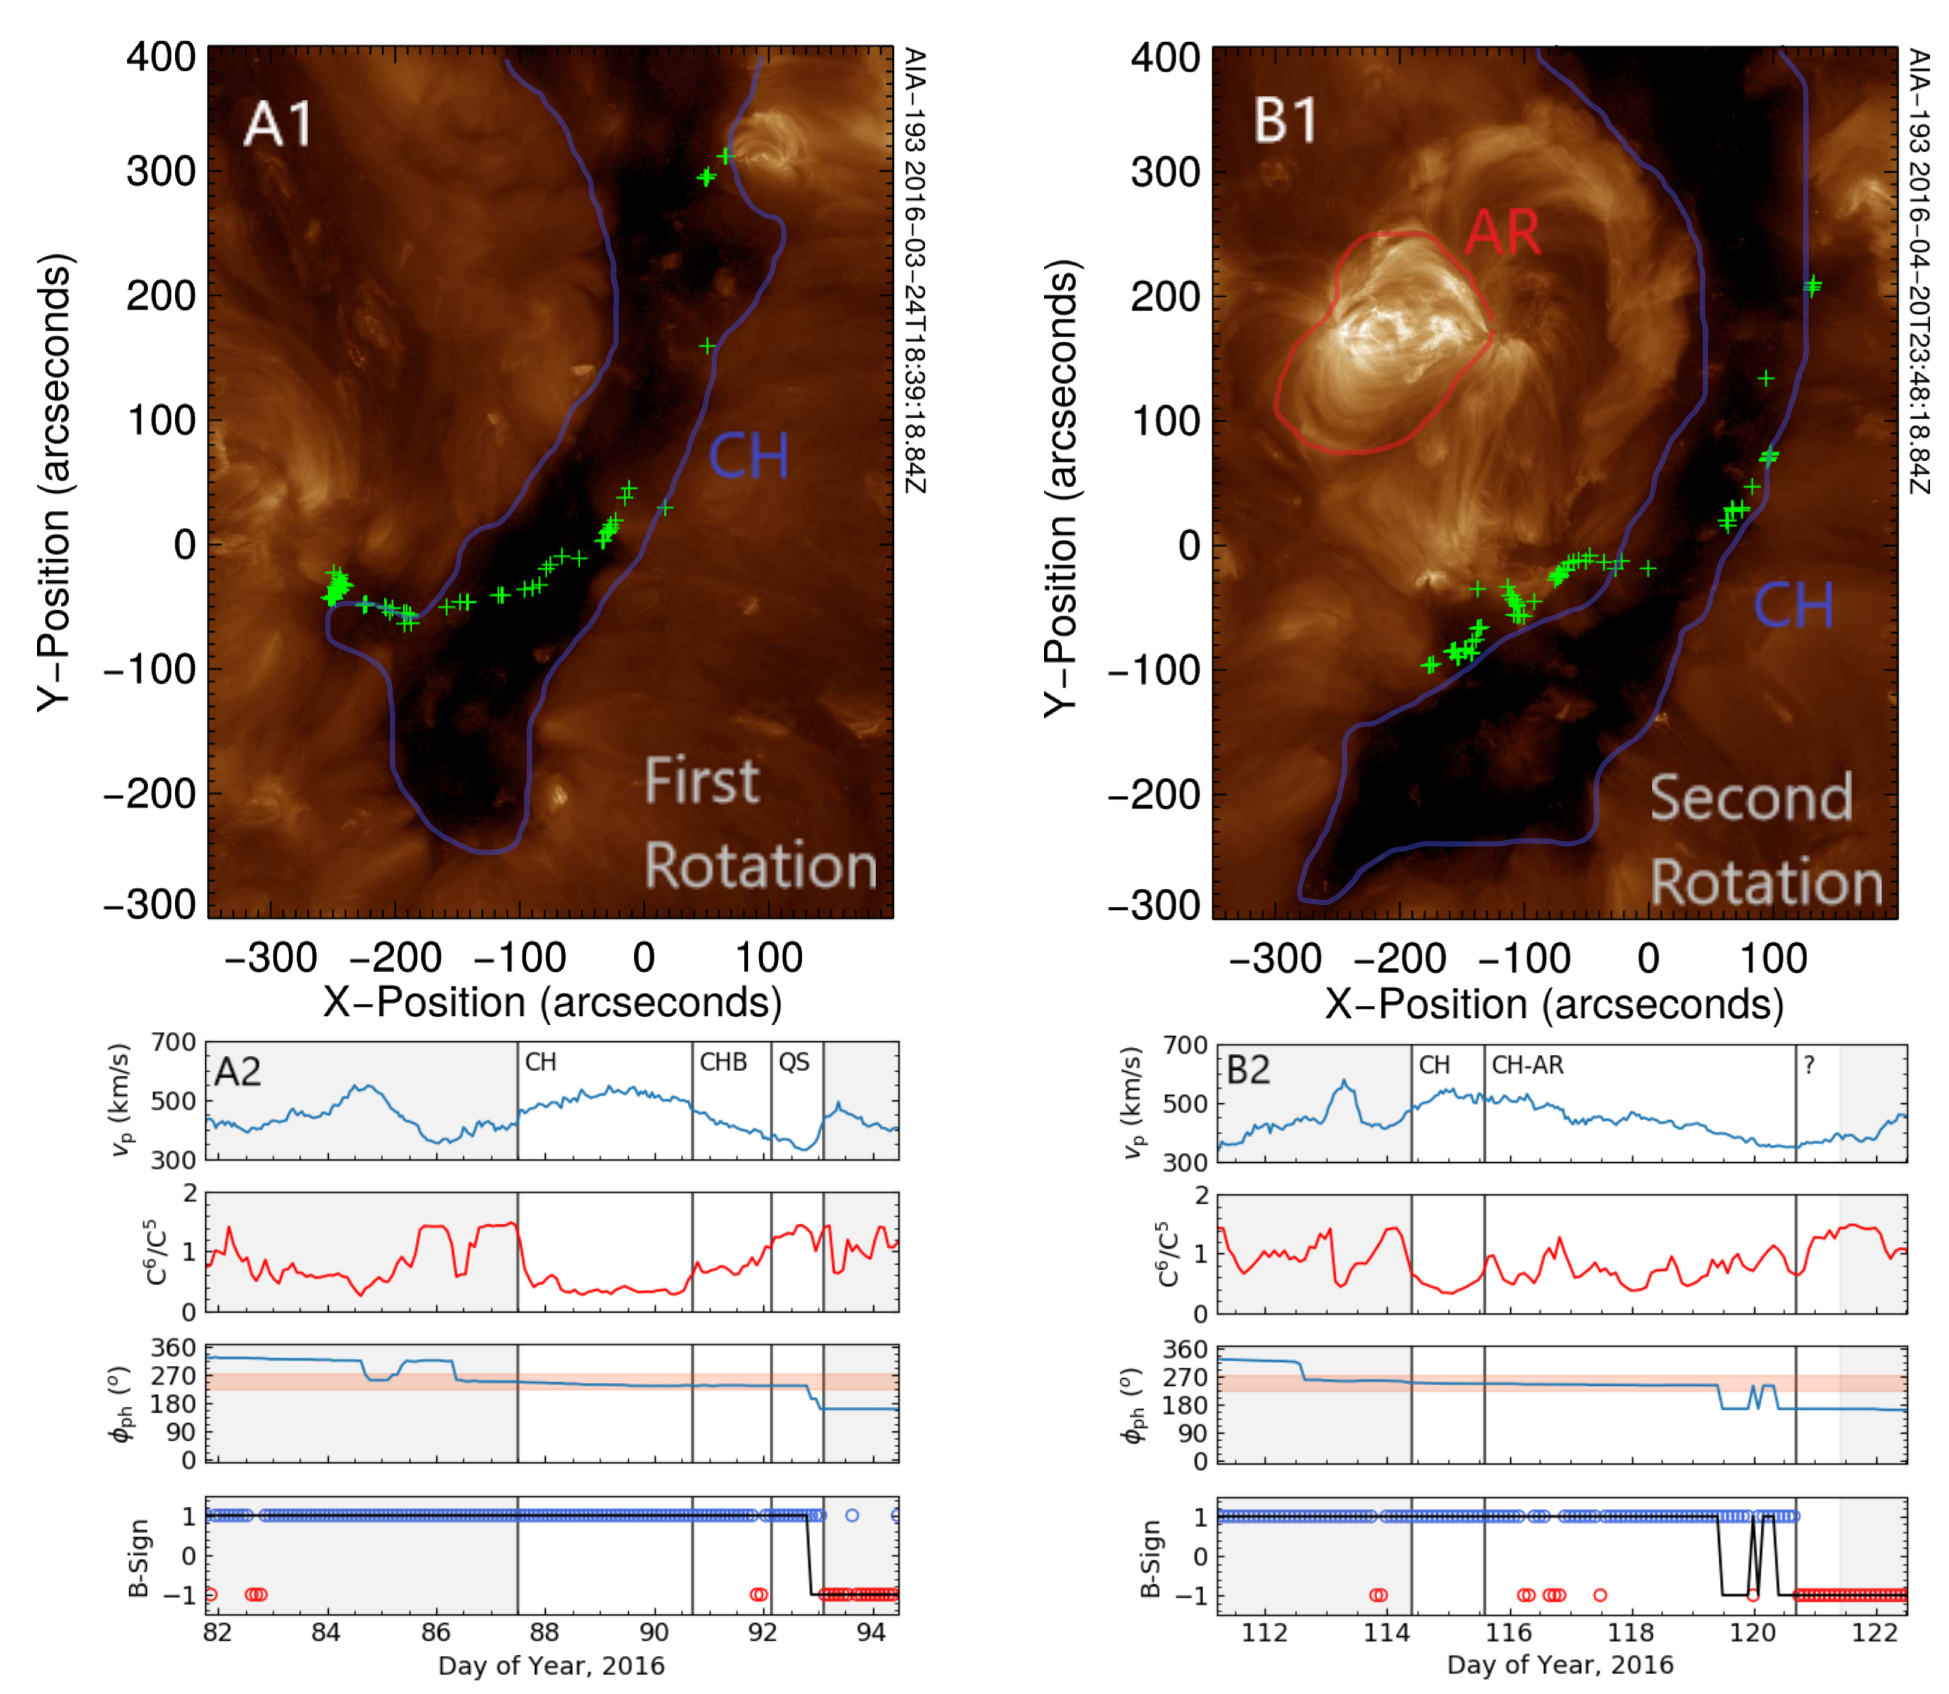 Solar images of the coronal hole alongside time series of solar wind properties.